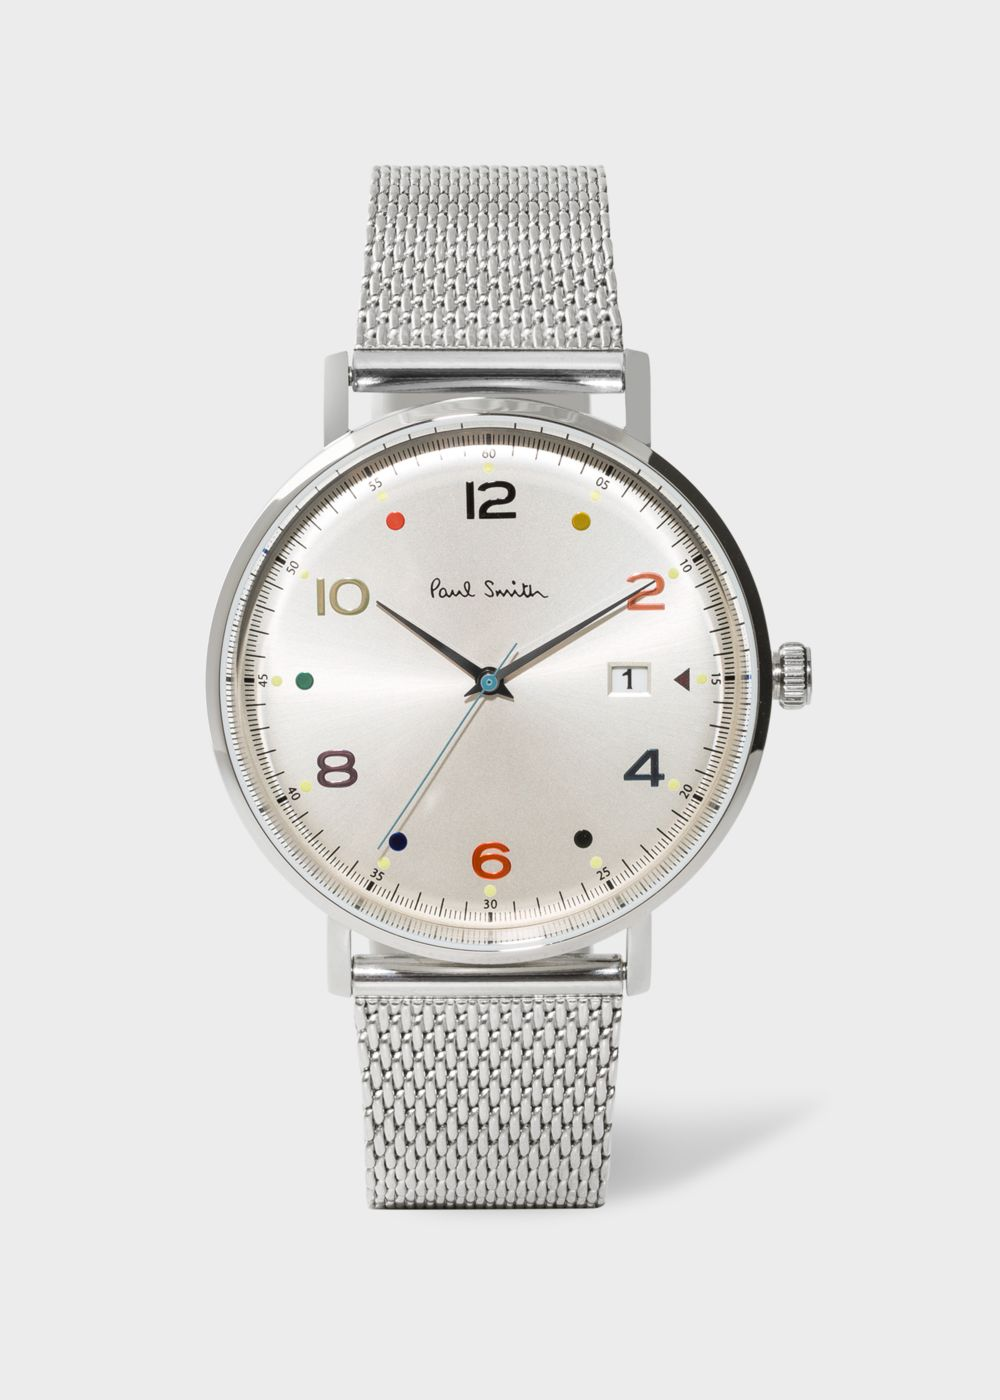 Paul Smith Men's Stainless Steel 'Gauge Colour' Watch